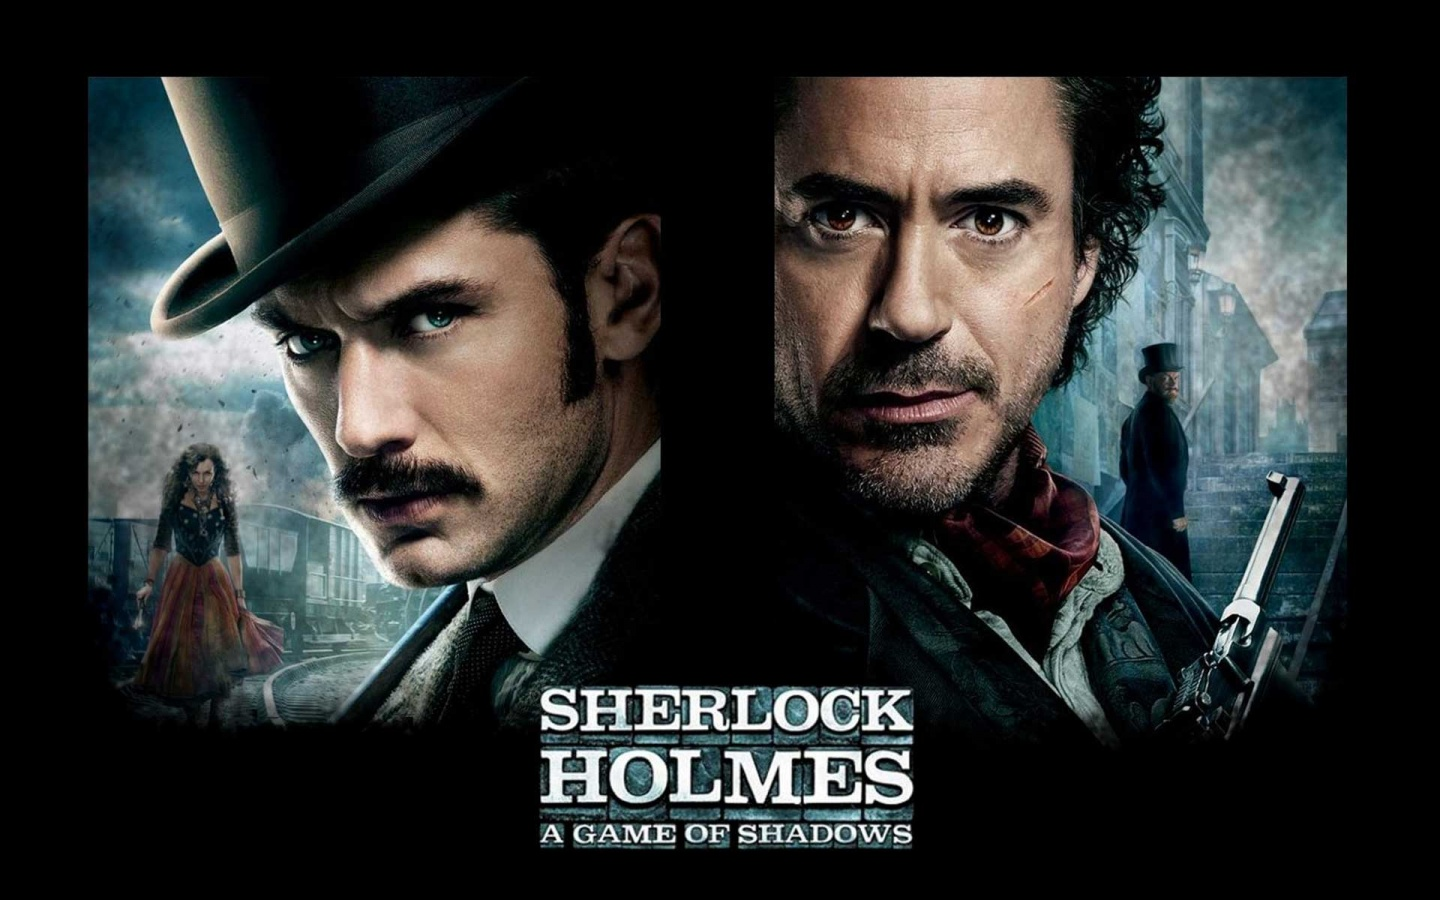 sherlock holmes: a game of shadows film reveiw essay 14-12-2011 i suppose any hope of an authentic sherlock holmes movie is  of a video essay series  film sherlock holmes: a game of shadows opens with.